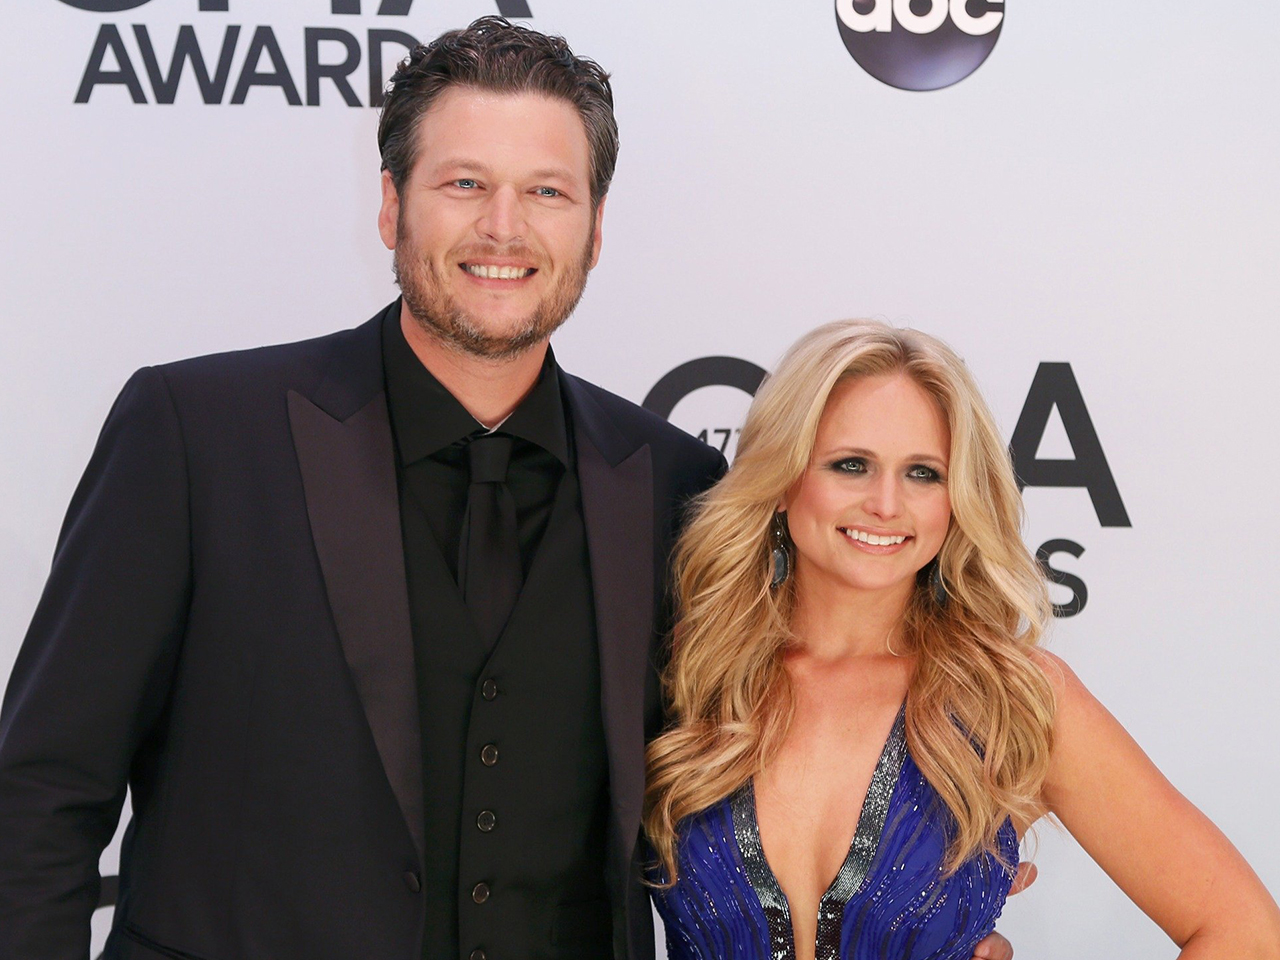 IMAGE: Blake Shelton and Miranda Lambert